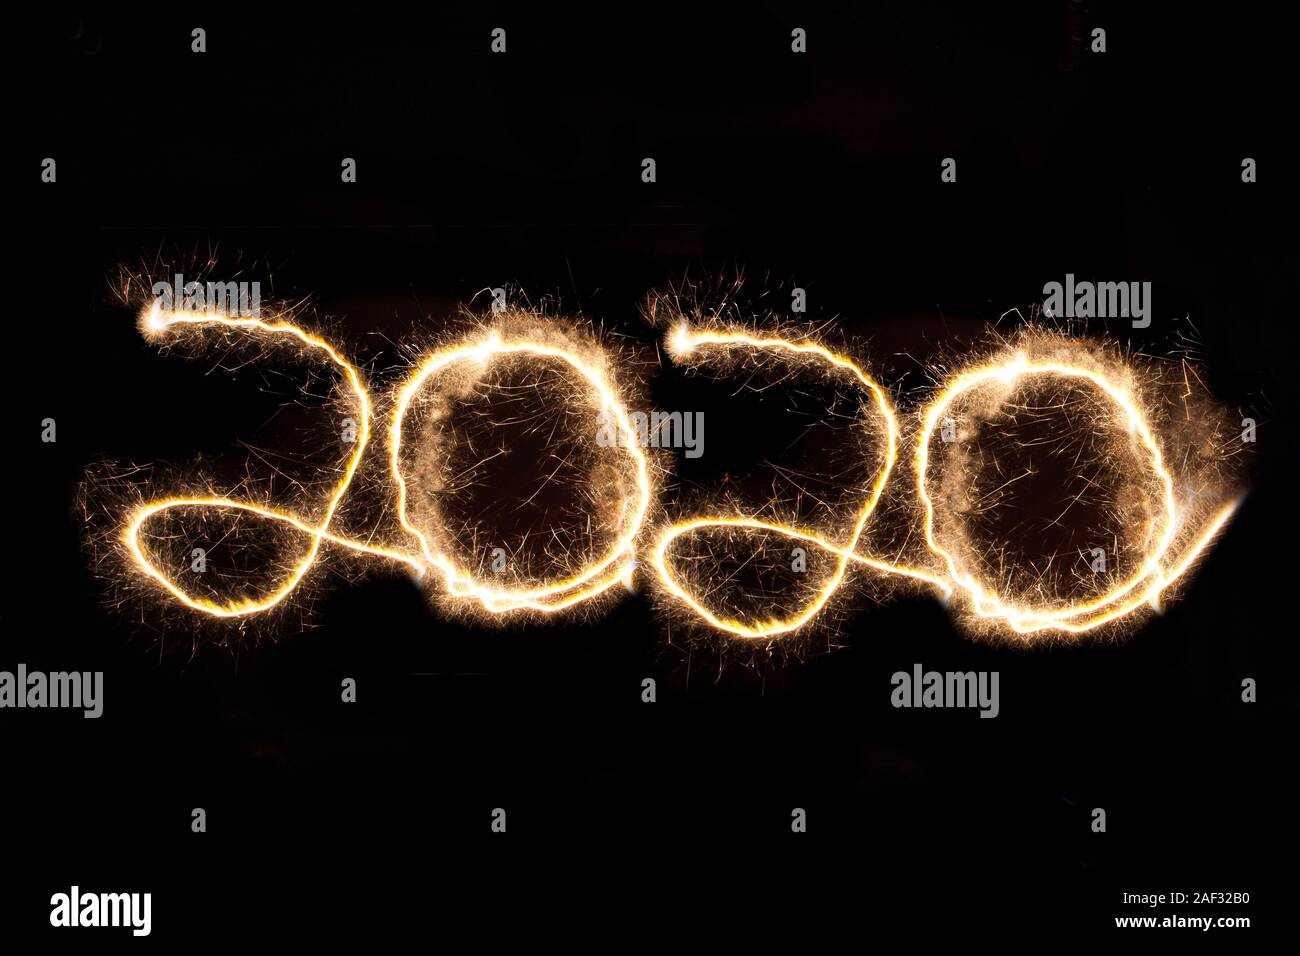 2020, New Years Eve, Light painting, Black Background, Happy new year, Stock Photo